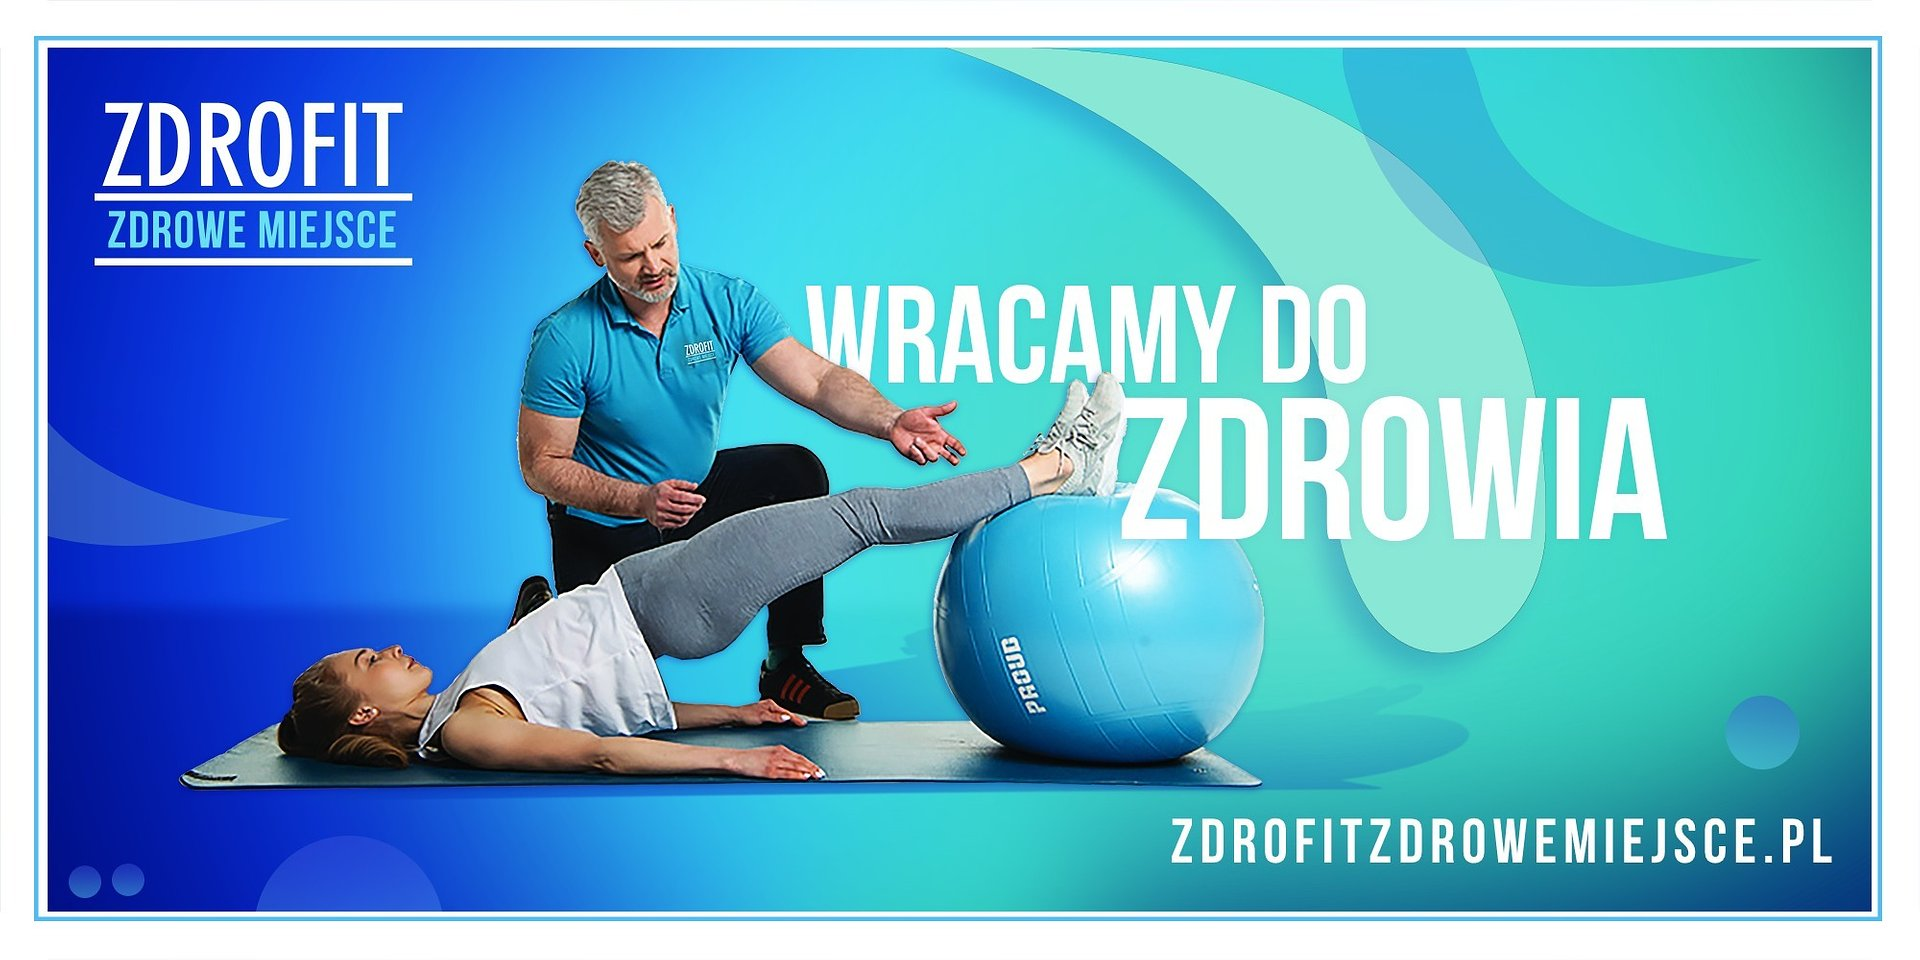 Zdrofit Zdrowe Miejsce is launched in Warsaw